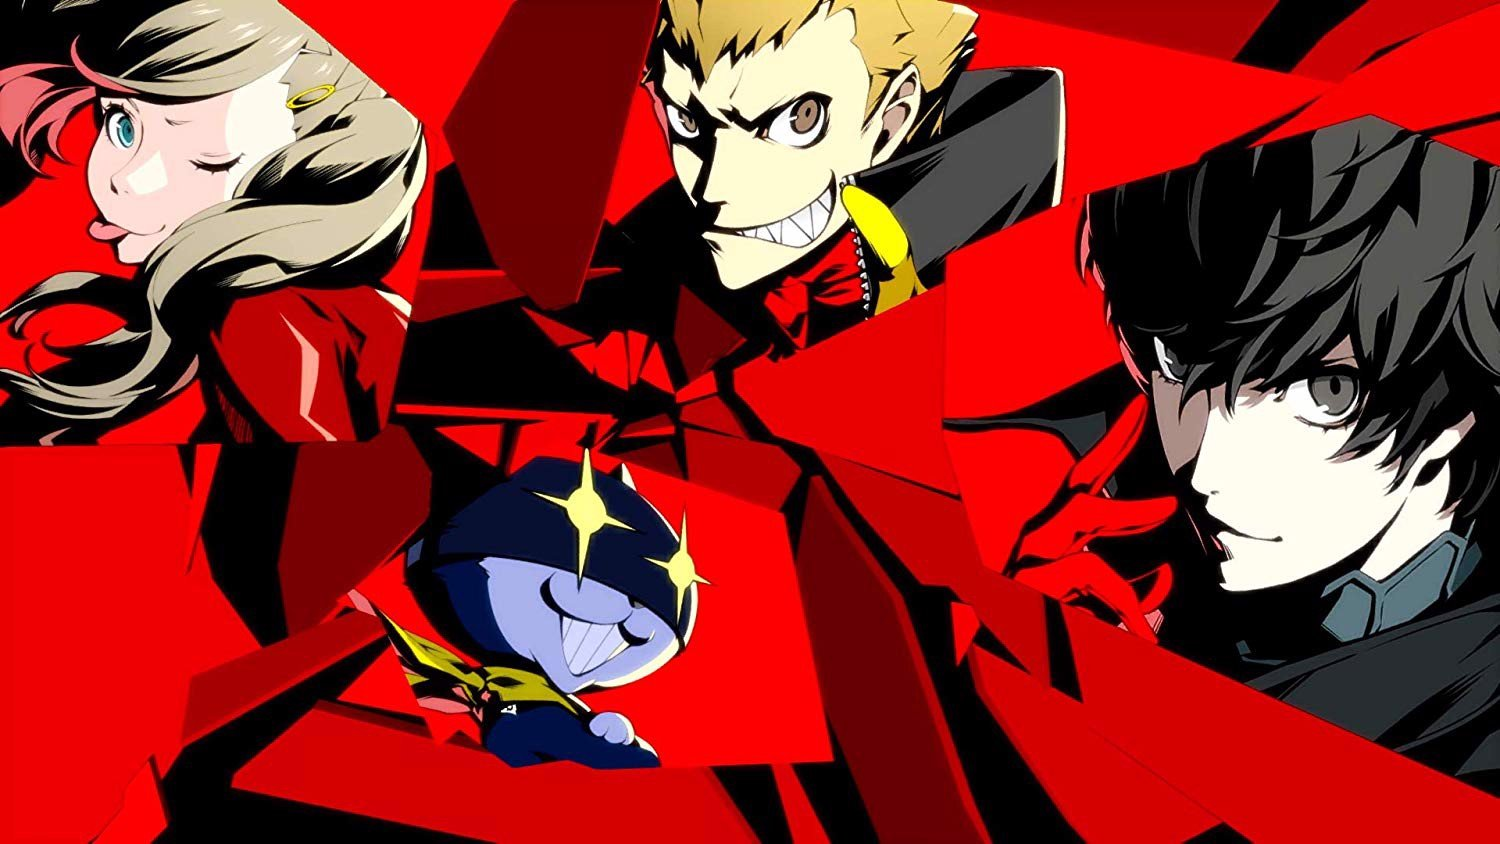 793 - Persona 5 Royal: Phantom Thieves Edition